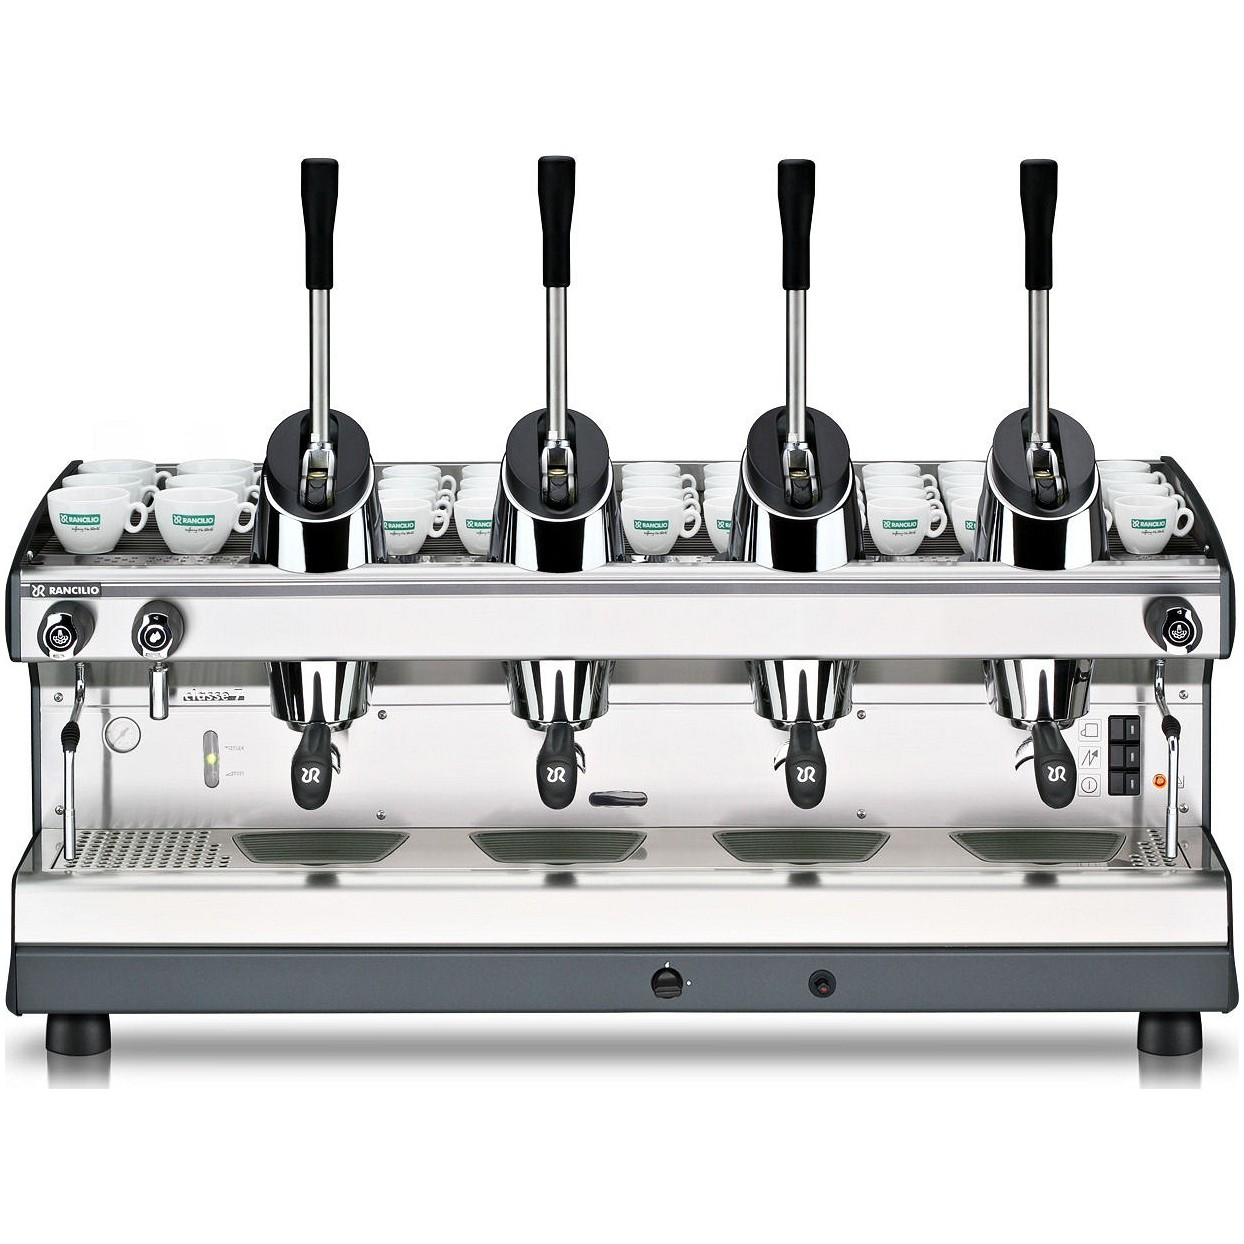 Hand Espresso Maker Best Choice For Personalized Home